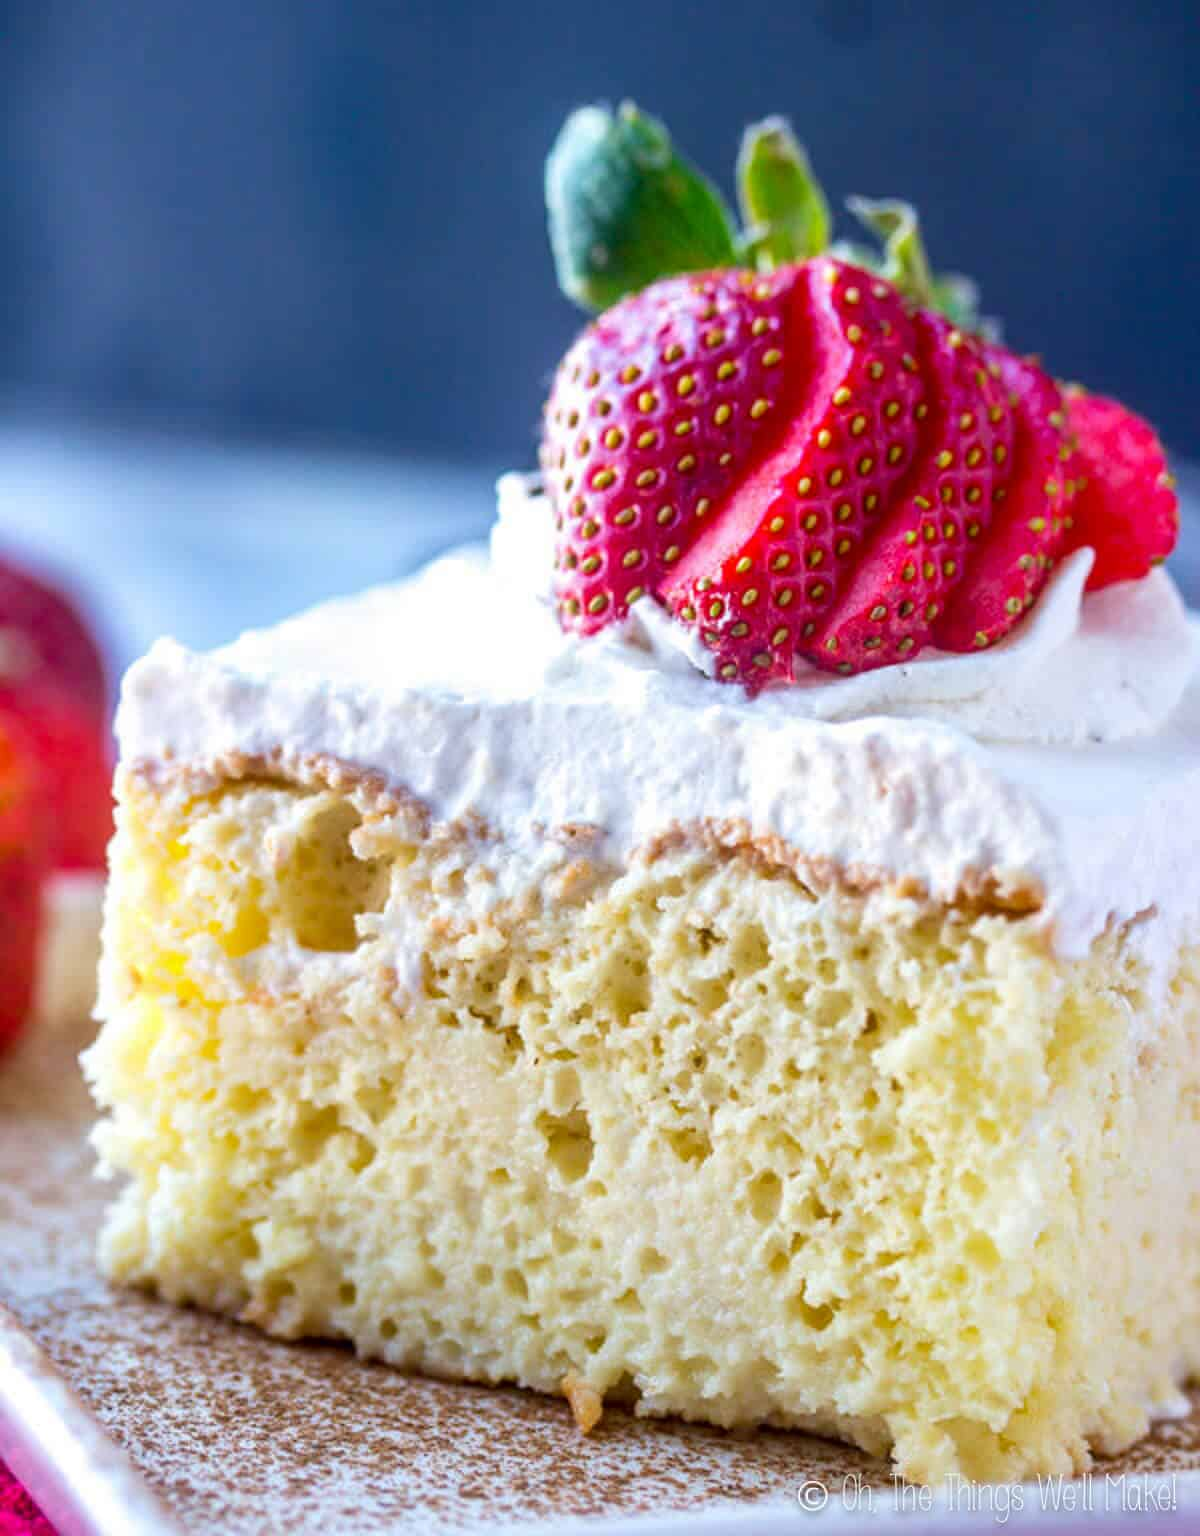 A slice of Tres Leches cake with sliced red strawberries on top.